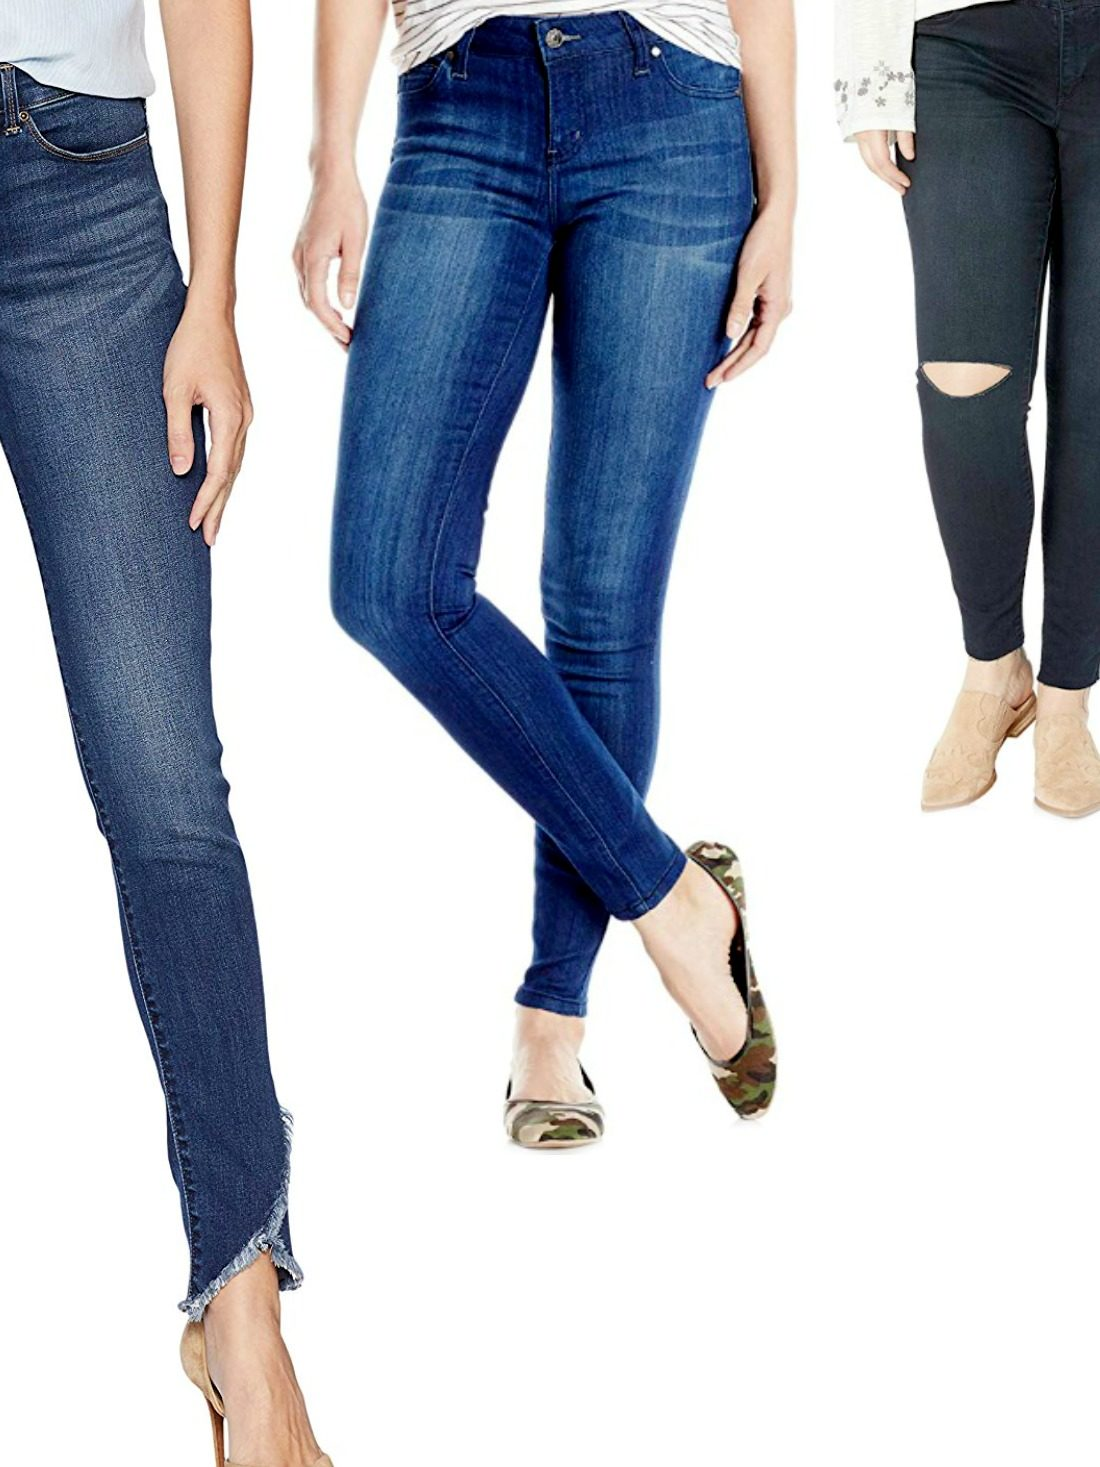 Distressed because your skinnies aren't working for you? Fret not! We are here to peel the seal with our list of 10 best skinny jeans for women that you won't get ENOUGH OFF!